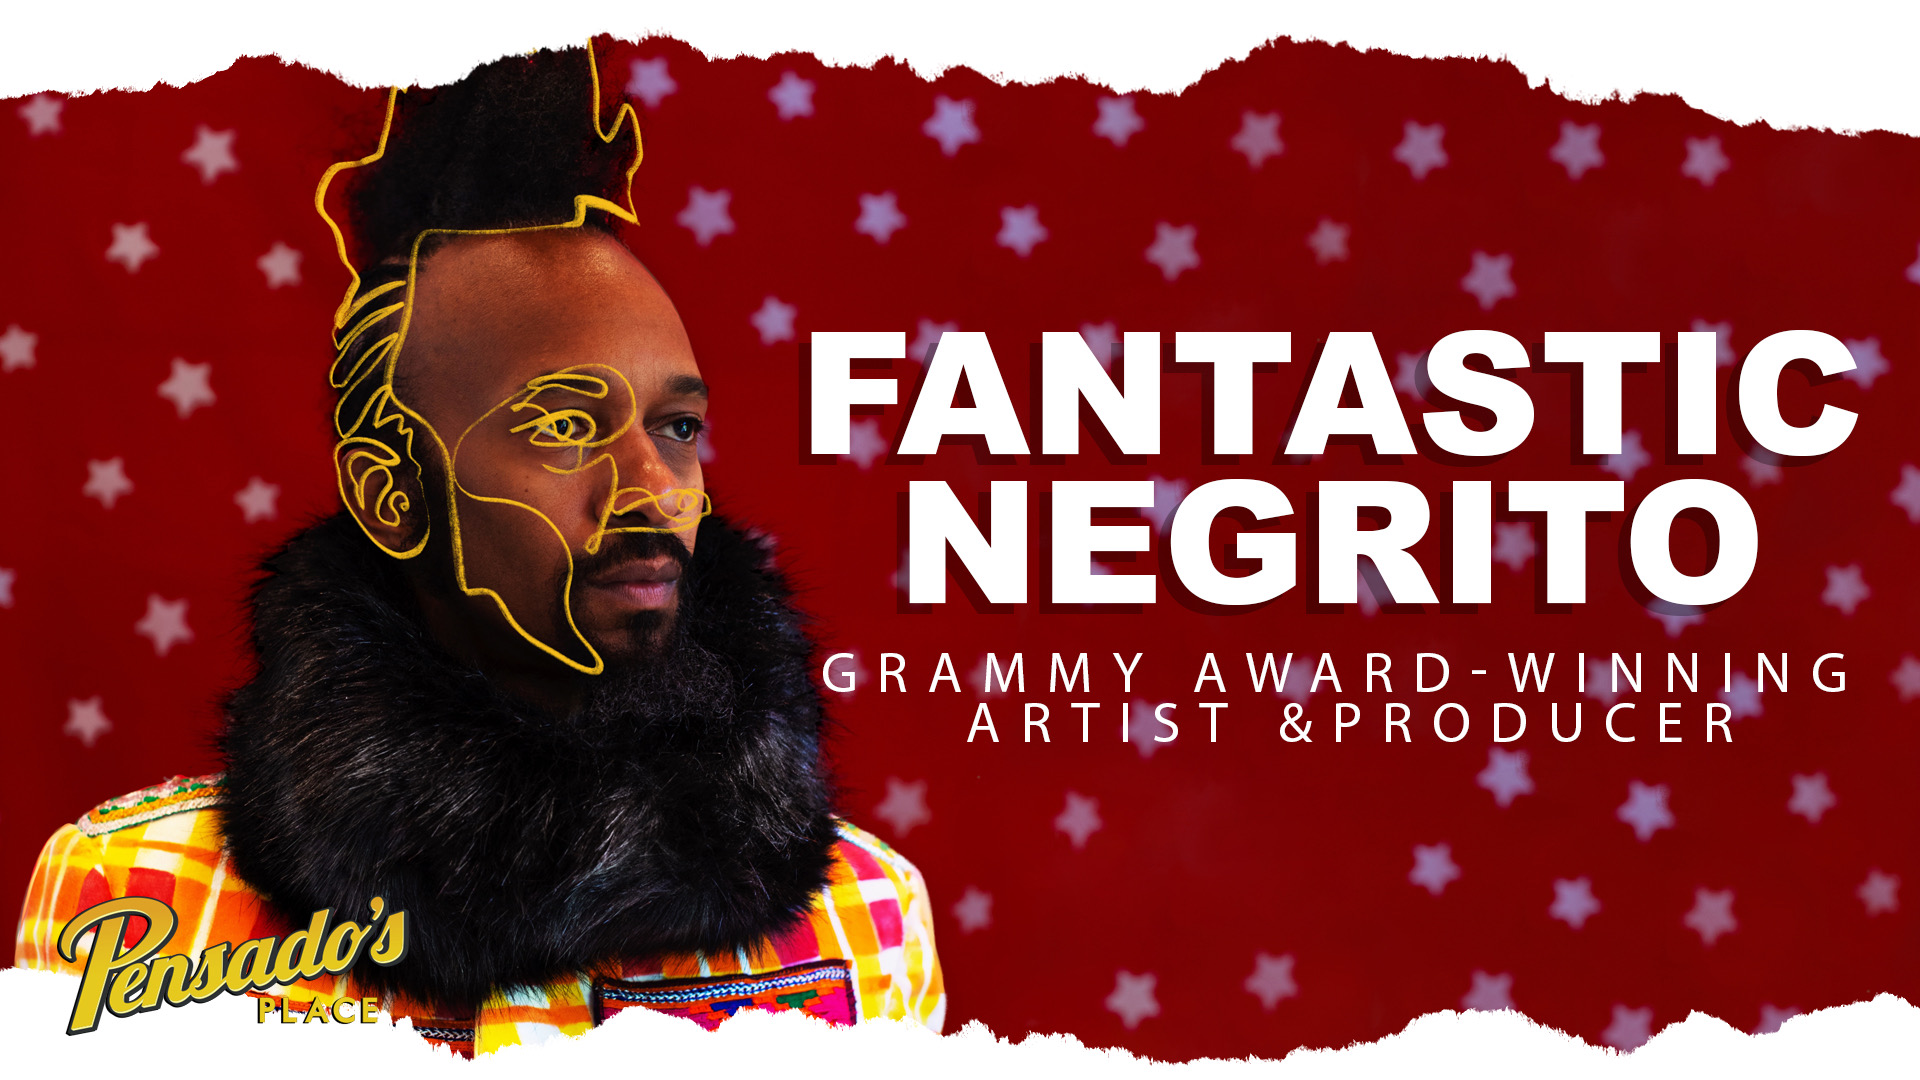 Grammy Award Winning Artist / Producer, Fantastic Negrito